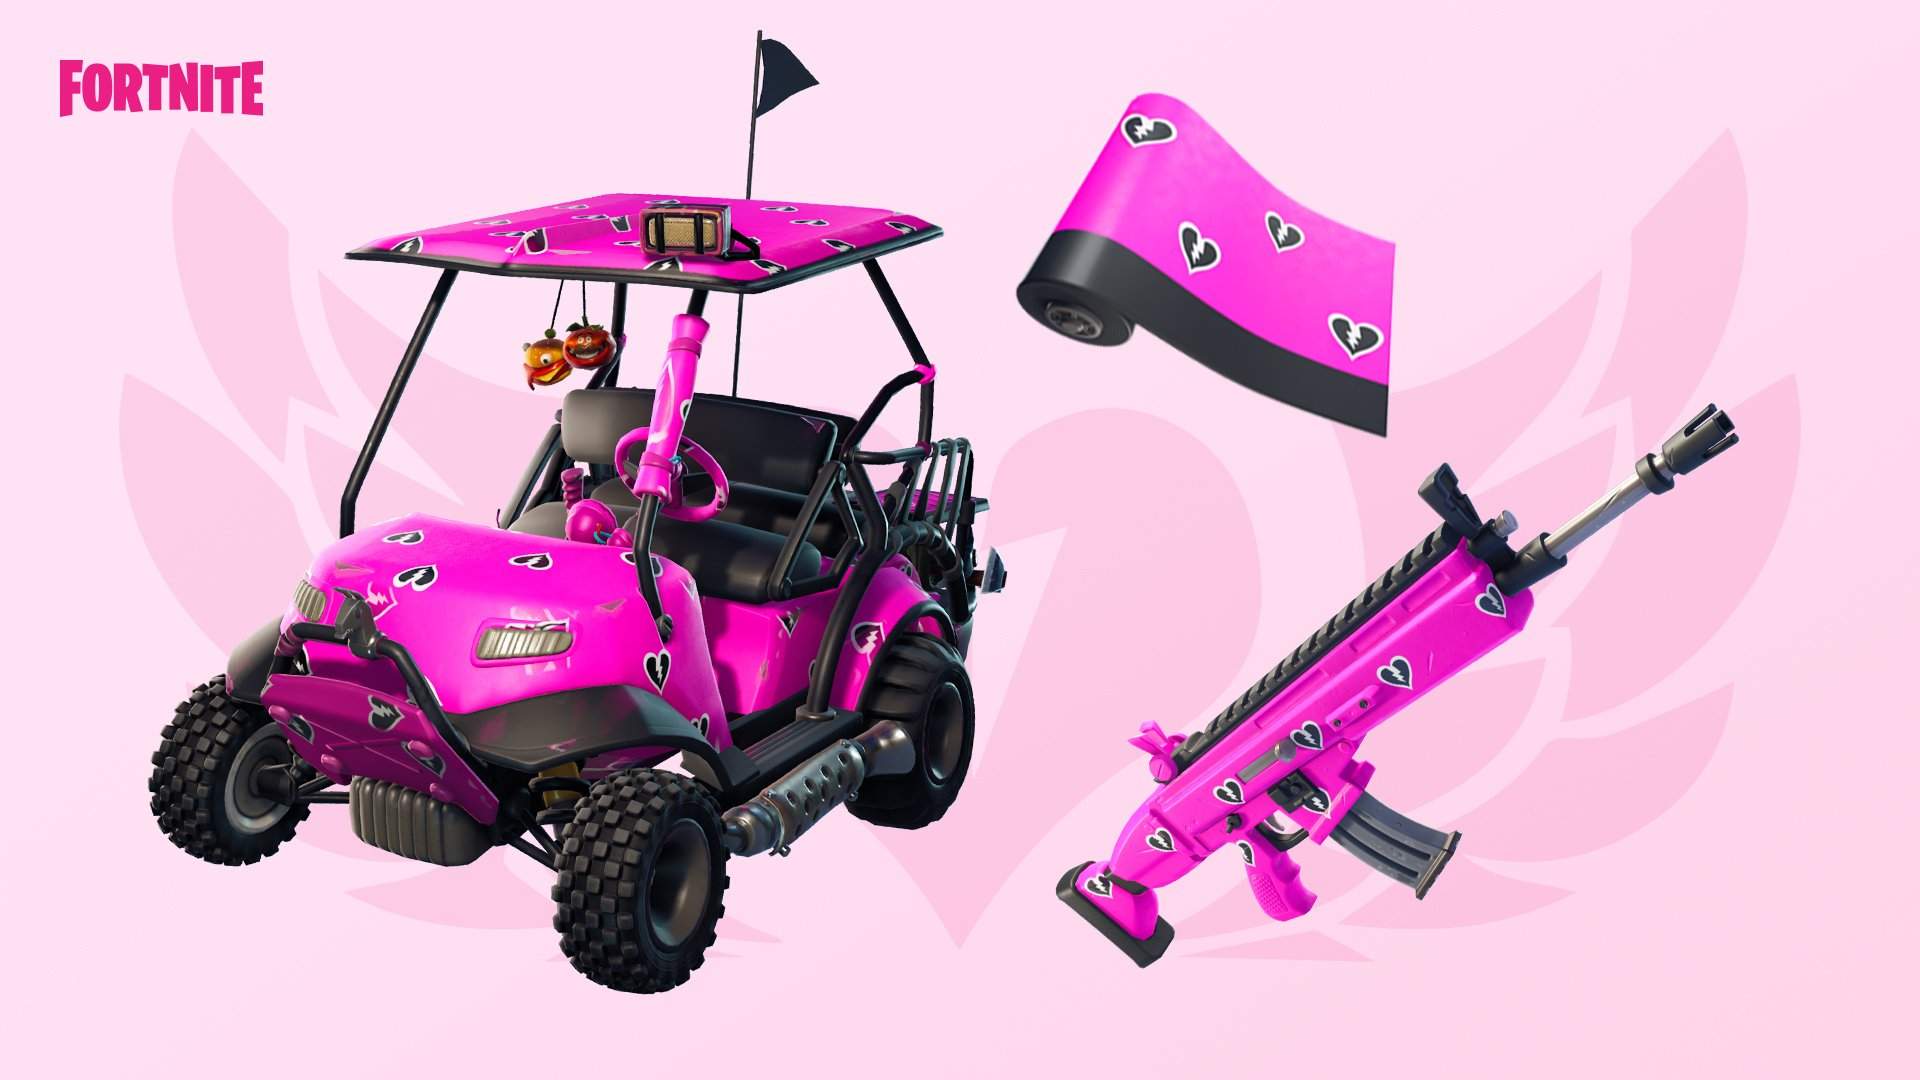 'Fortnite' Valentine's Day Event, Share the Love, Is Now Live